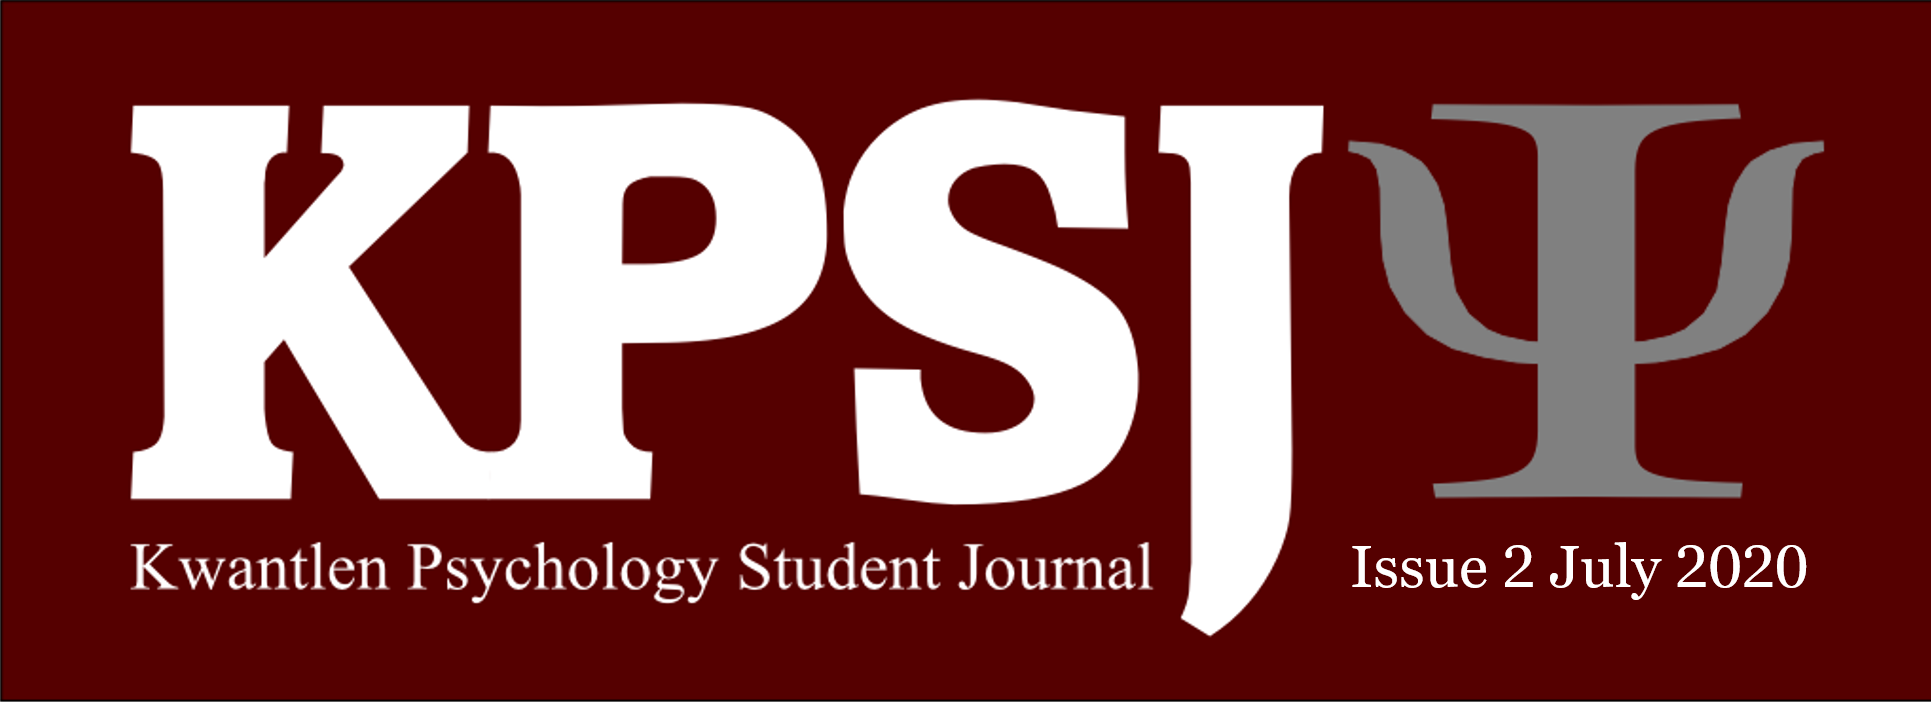 KPSJ, Kwantlen Psychology Student Journal, Issue 2, July 2020